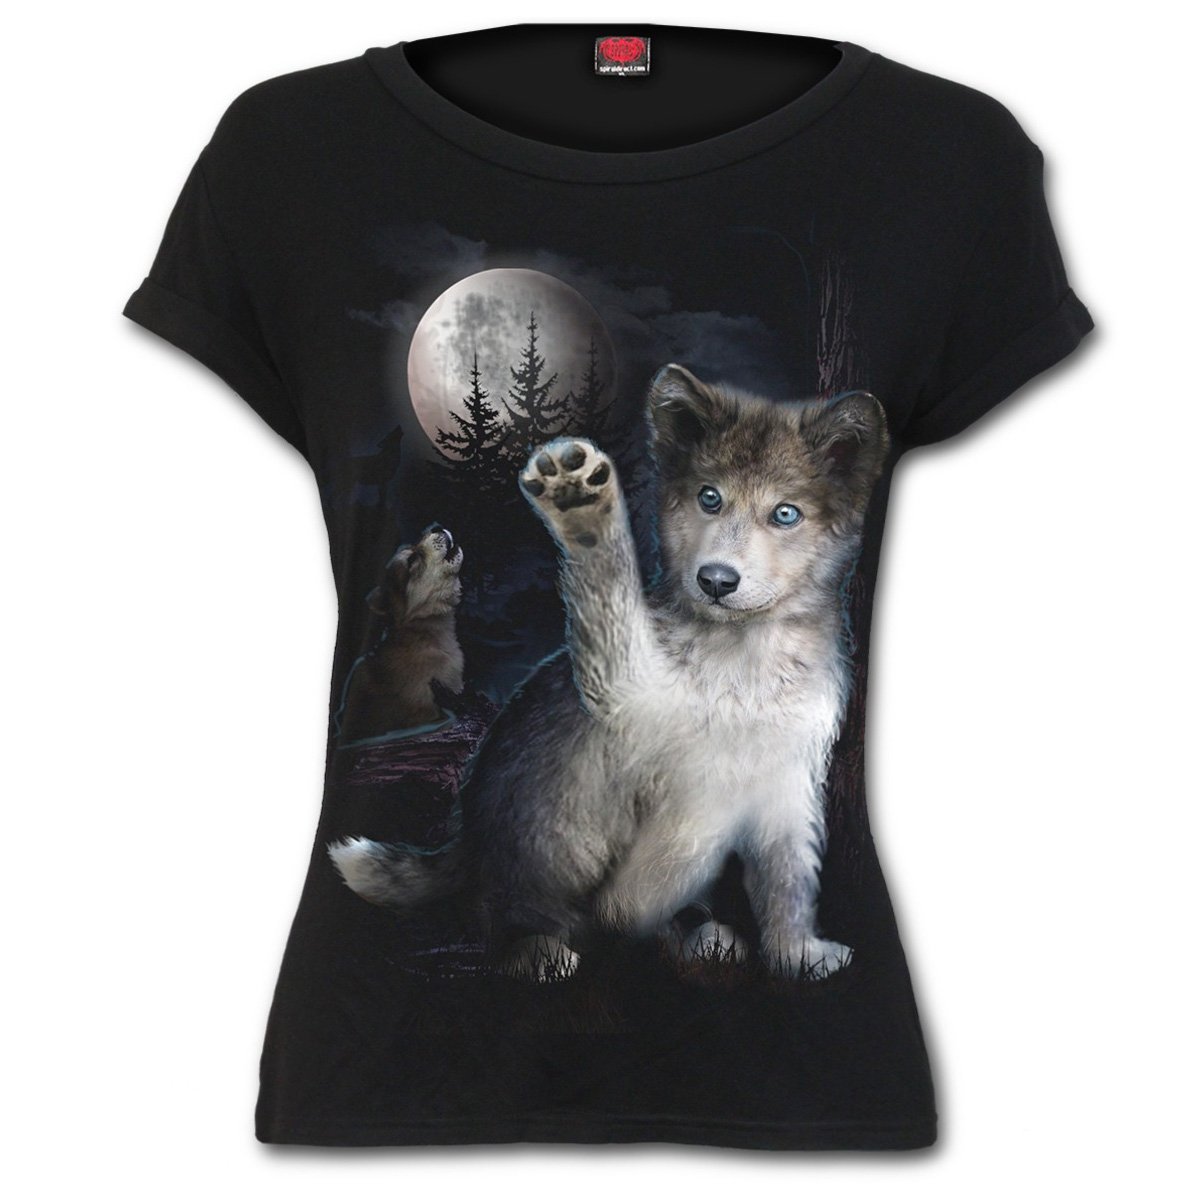 SPIRAL-DIRECT-Ladies-Black-Goth-Moon-WOLF-PUPPY-T-Shirt-Top-All-Sizes thumbnail 9